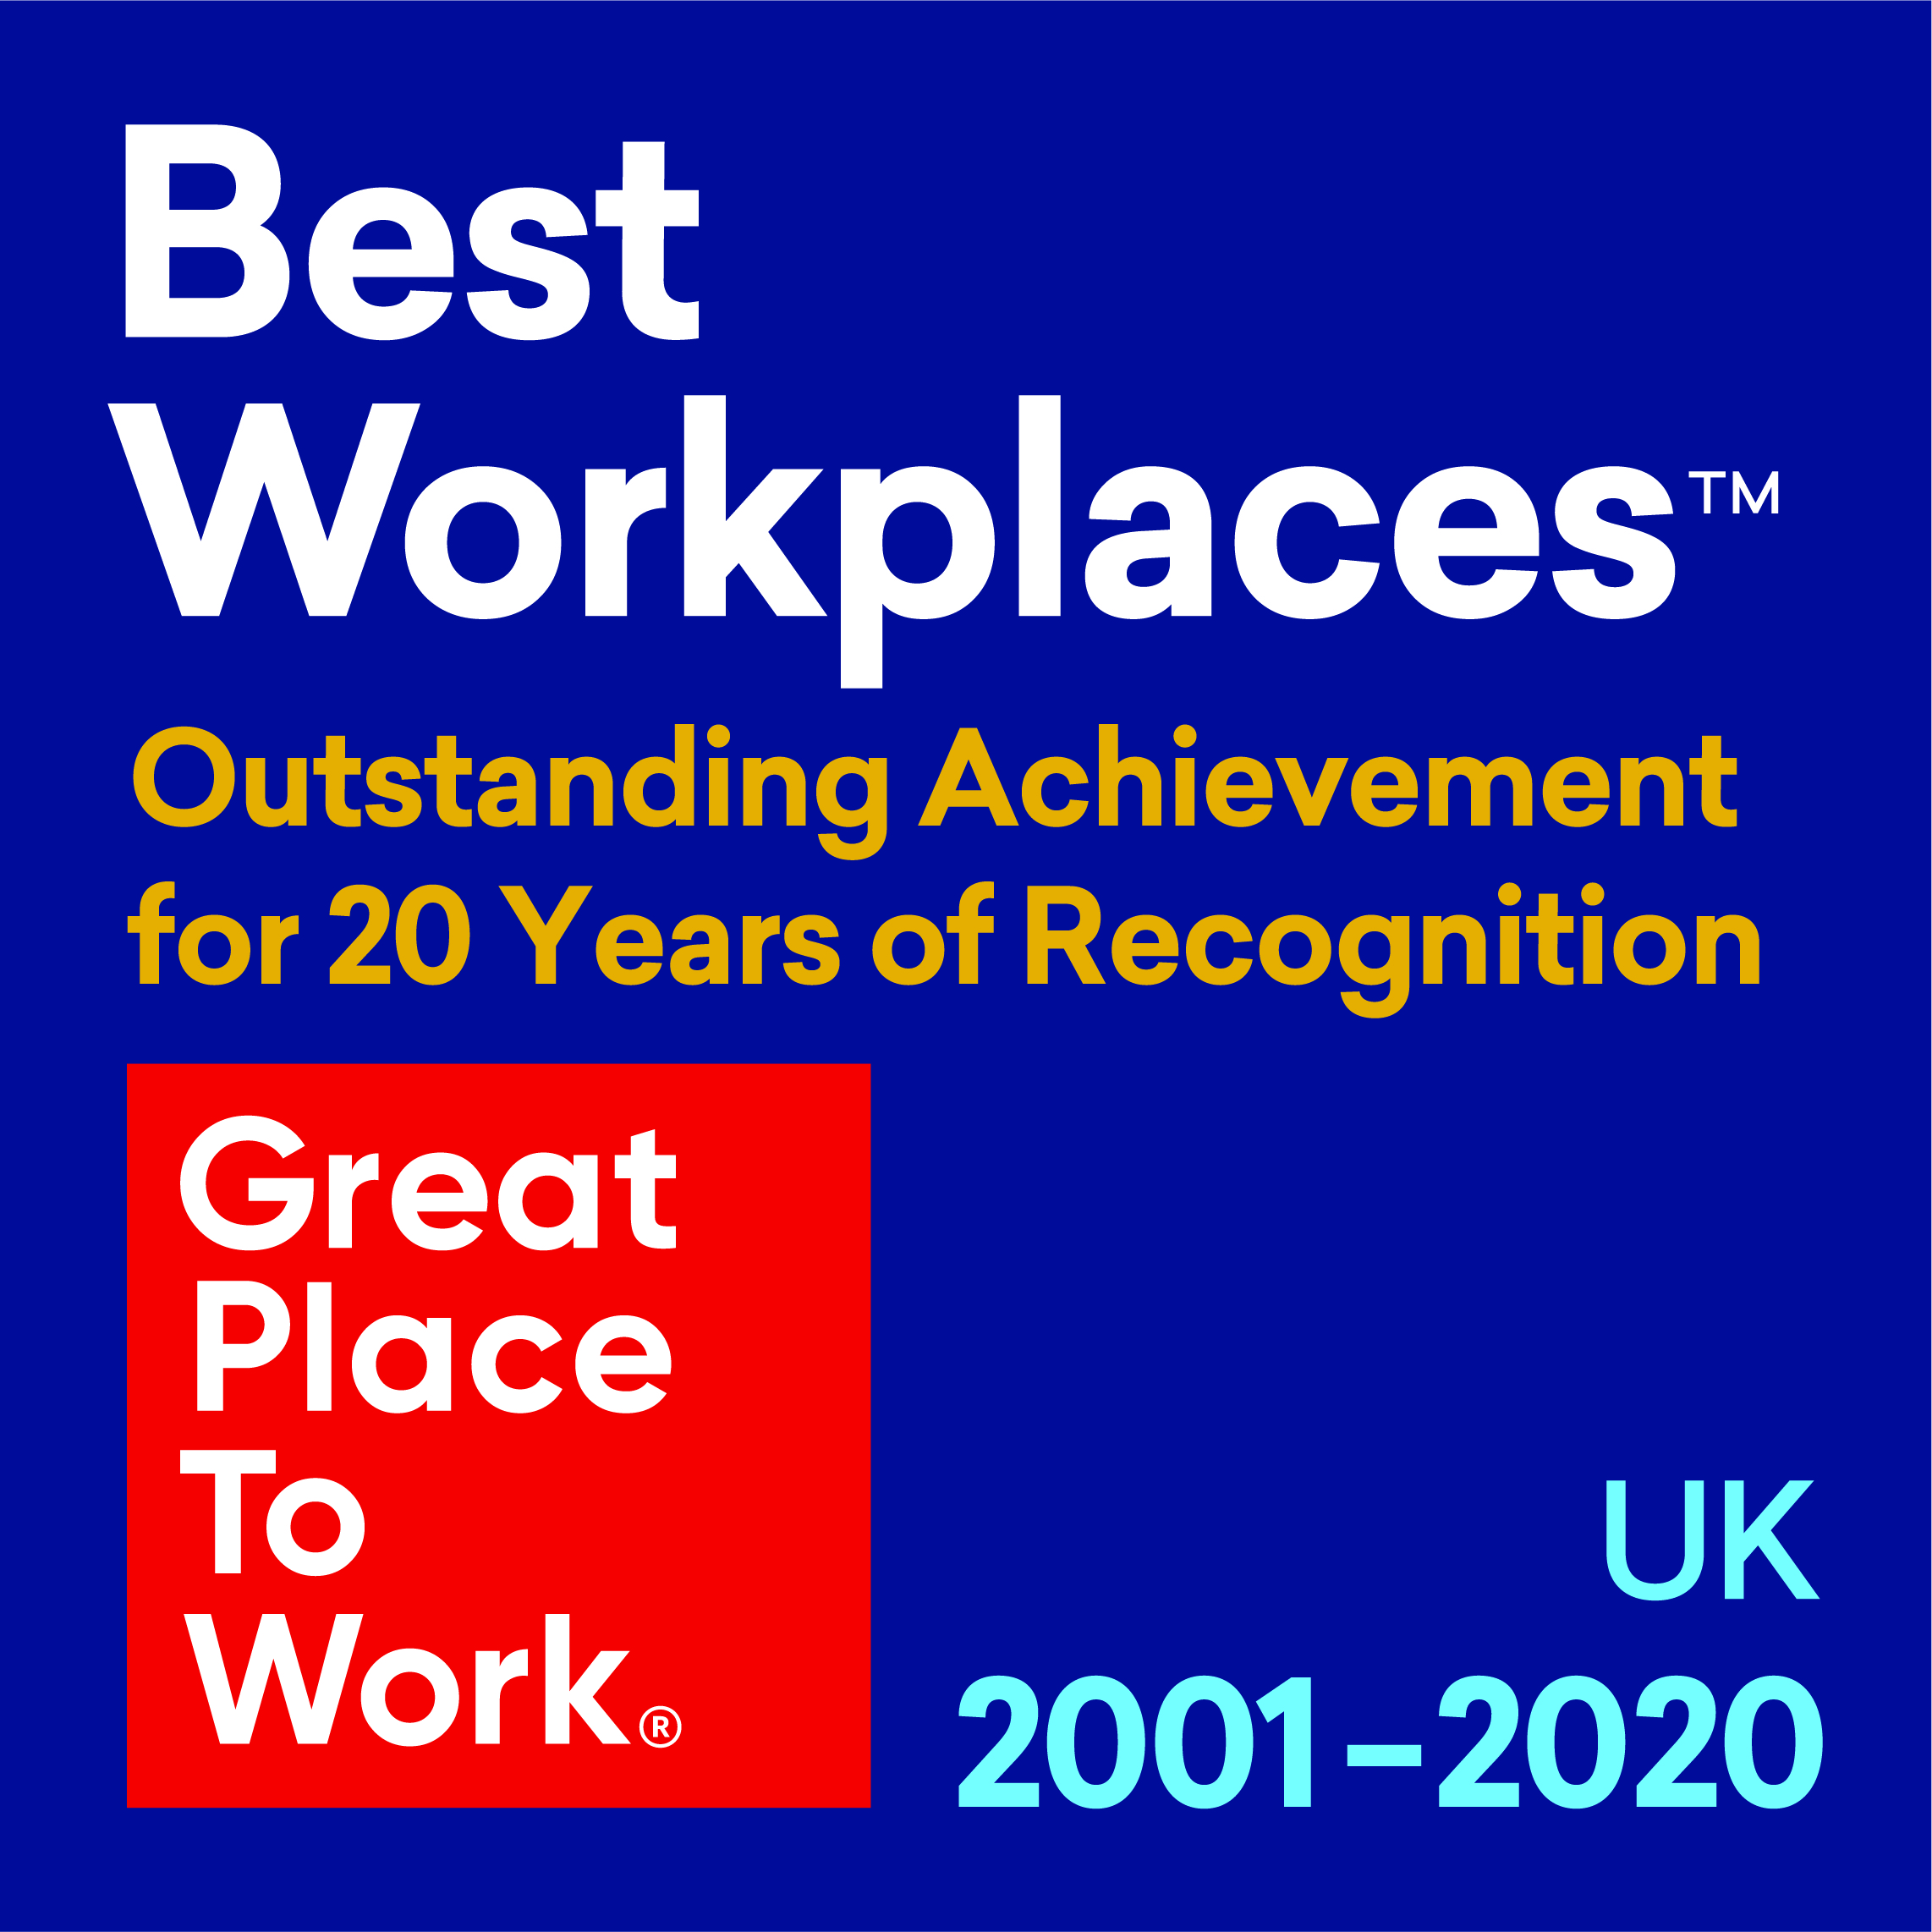 Best Workplaces Outstanding Achievement 2001 - 2020